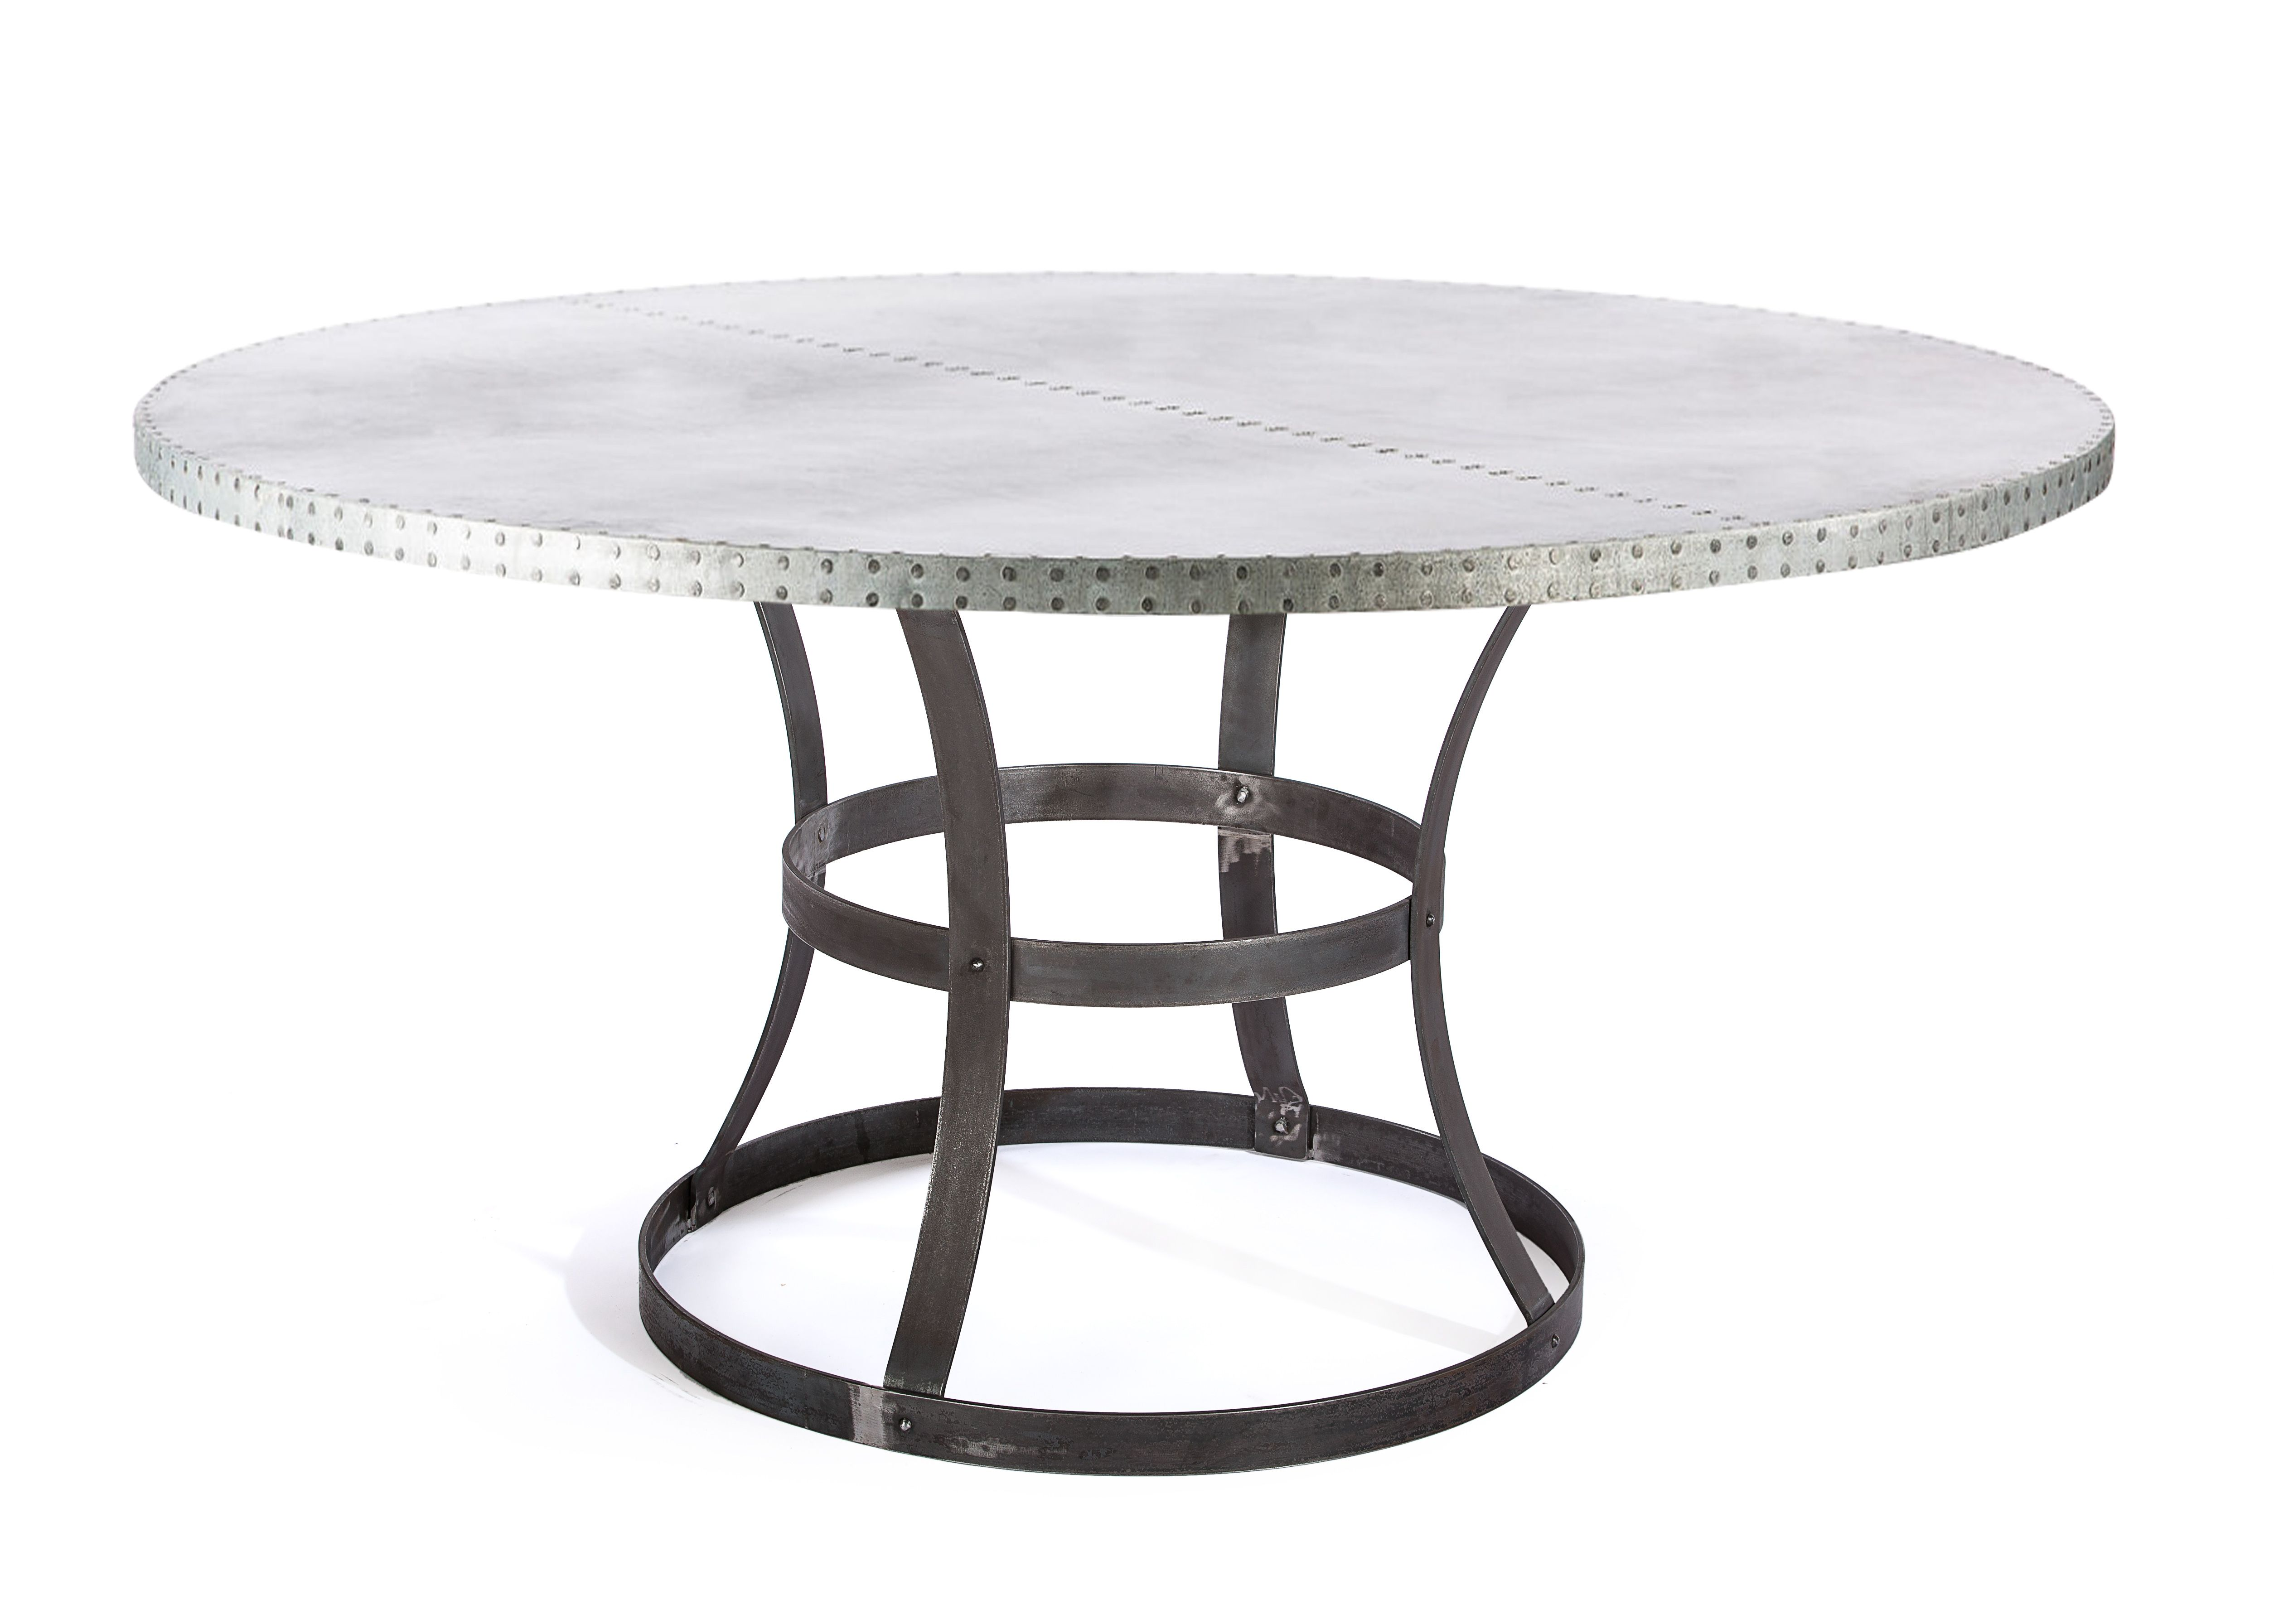 zinc kitchen table pantry ikea buy a custom dining madera steel ring round made top